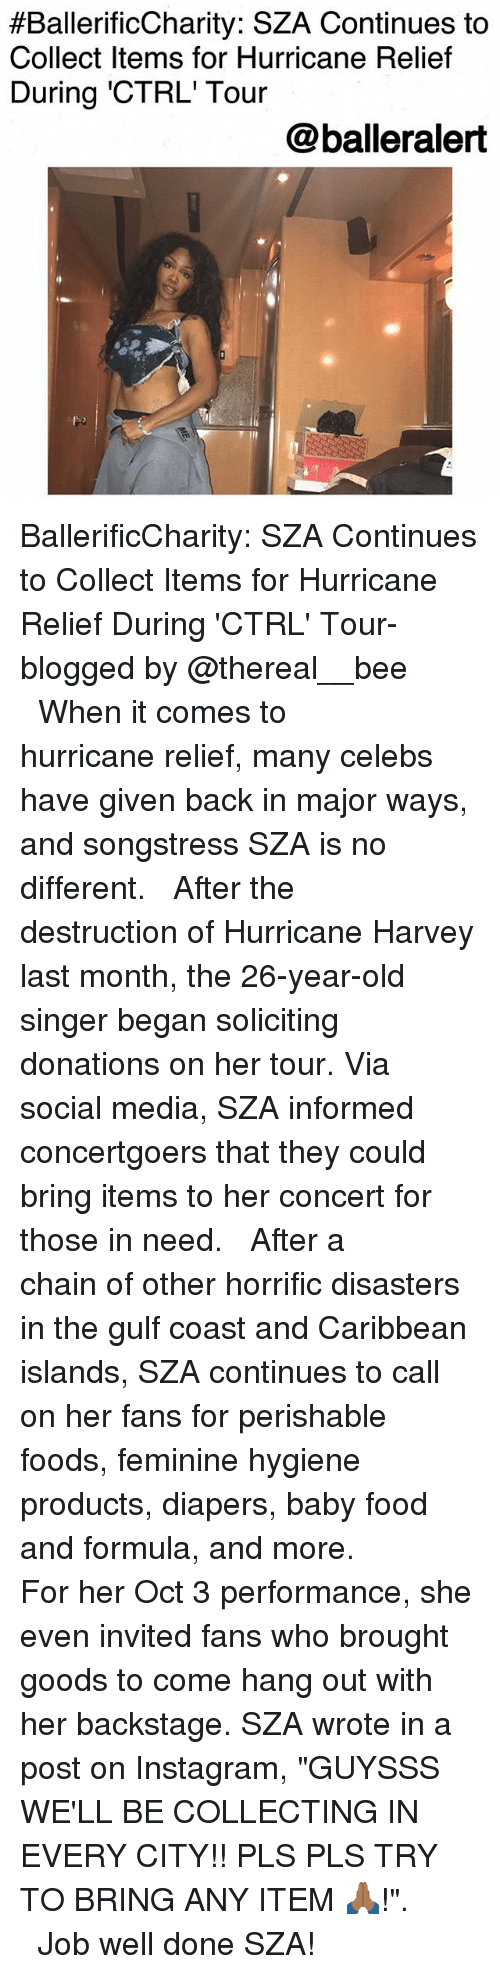 """Hurricane Harvey:  #BallerificCharity. SZA Continues to  Collect Items for Hurricane Relief  During 'CTRL' Tour  @balleralert BallerificCharity: SZA Continues to Collect Items for Hurricane Relief During 'CTRL' Tour-blogged by @thereal__bee ⠀⠀⠀⠀⠀⠀⠀⠀⠀ ⠀⠀ When it comes to hurricane relief, many celebs have given back in major ways, and songstress SZA is no different. ⠀⠀⠀⠀⠀⠀⠀⠀⠀ ⠀⠀ After the destruction of Hurricane Harvey last month, the 26-year-old singer began soliciting donations on her tour. Via social media, SZA informed concertgoers that they could bring items to her concert for those in need. ⠀⠀⠀⠀⠀⠀⠀⠀⠀ ⠀⠀ After a chain of other horrific disasters in the gulf coast and Caribbean islands, SZA continues to call on her fans for perishable foods, feminine hygiene products, diapers, baby food and formula, and more. ⠀⠀⠀⠀⠀⠀⠀⠀⠀ ⠀⠀ For her Oct 3 performance, she even invited fans who brought goods to come hang out with her backstage. SZA wrote in a post on Instagram, """"GUYSSS WE'LL BE COLLECTING IN EVERY CITY!! PLS PLS TRY TO BRING ANY ITEM 🙏🏾!"""". ⠀⠀⠀⠀⠀⠀⠀⠀⠀ ⠀⠀ Job well done SZA!"""